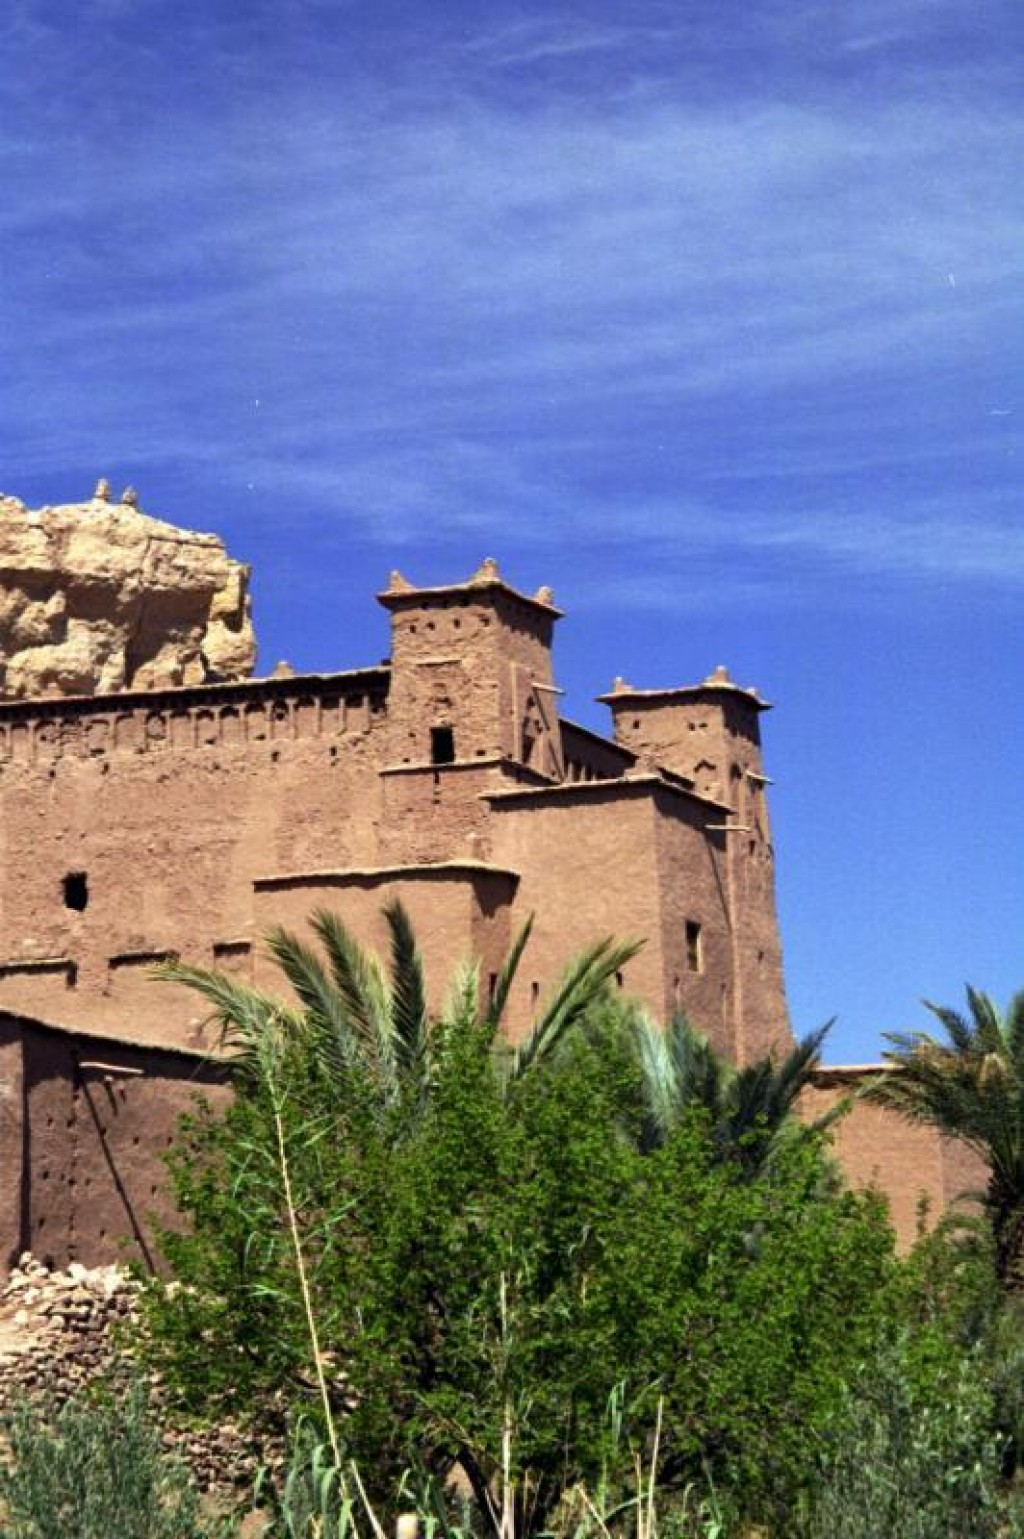 After the gorges, we next visited Ouarzazate , which is right next to Ait Benhaddou.